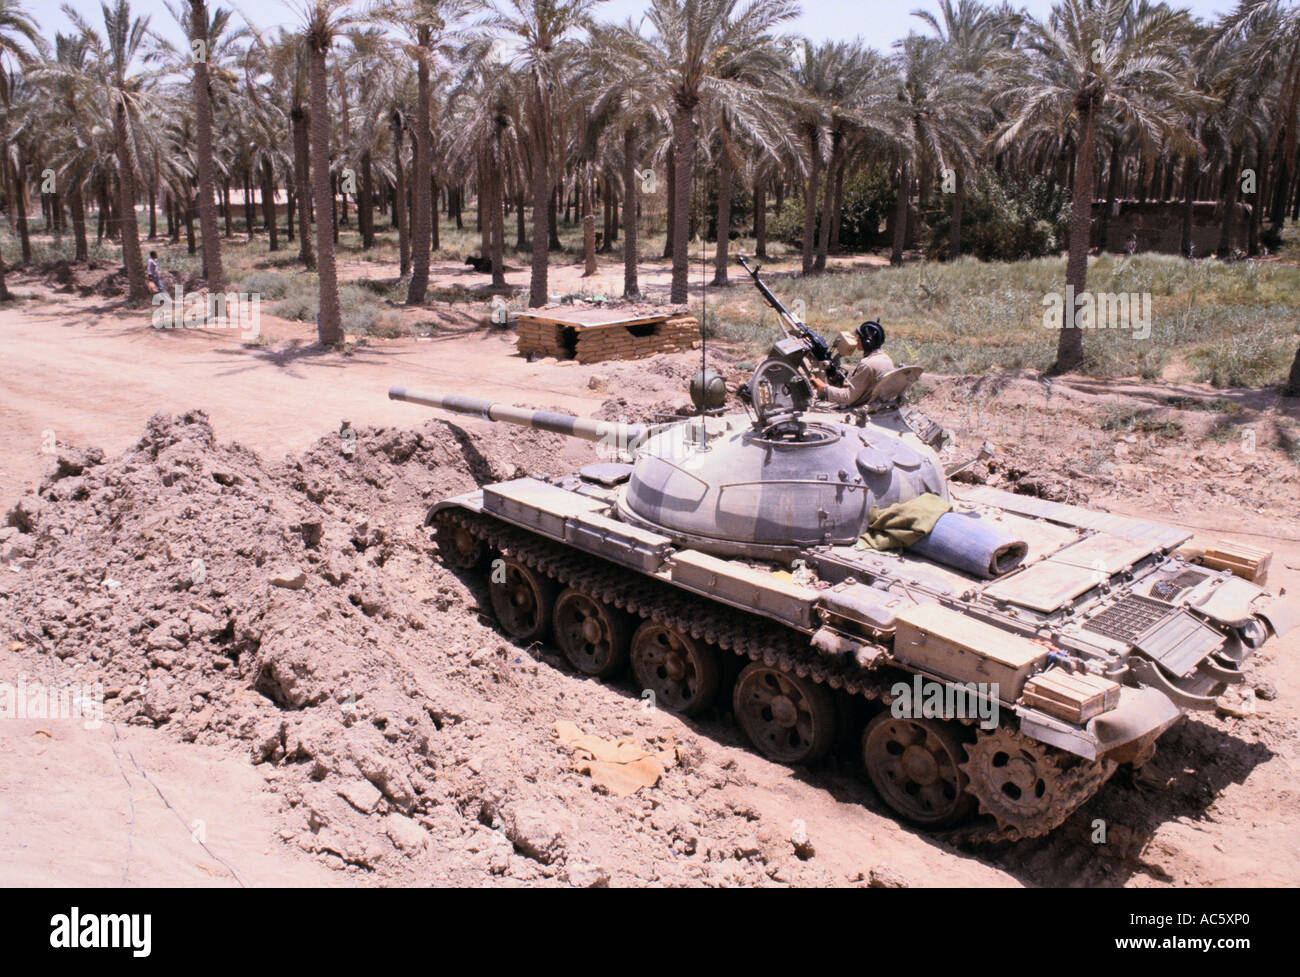 https://c7.alamy.com/comp/AC5XP0/iraq-iran-war-iraqi-soldiers-manning-tank-near-basra-iraq-7-1982-AC5XP0.jpg